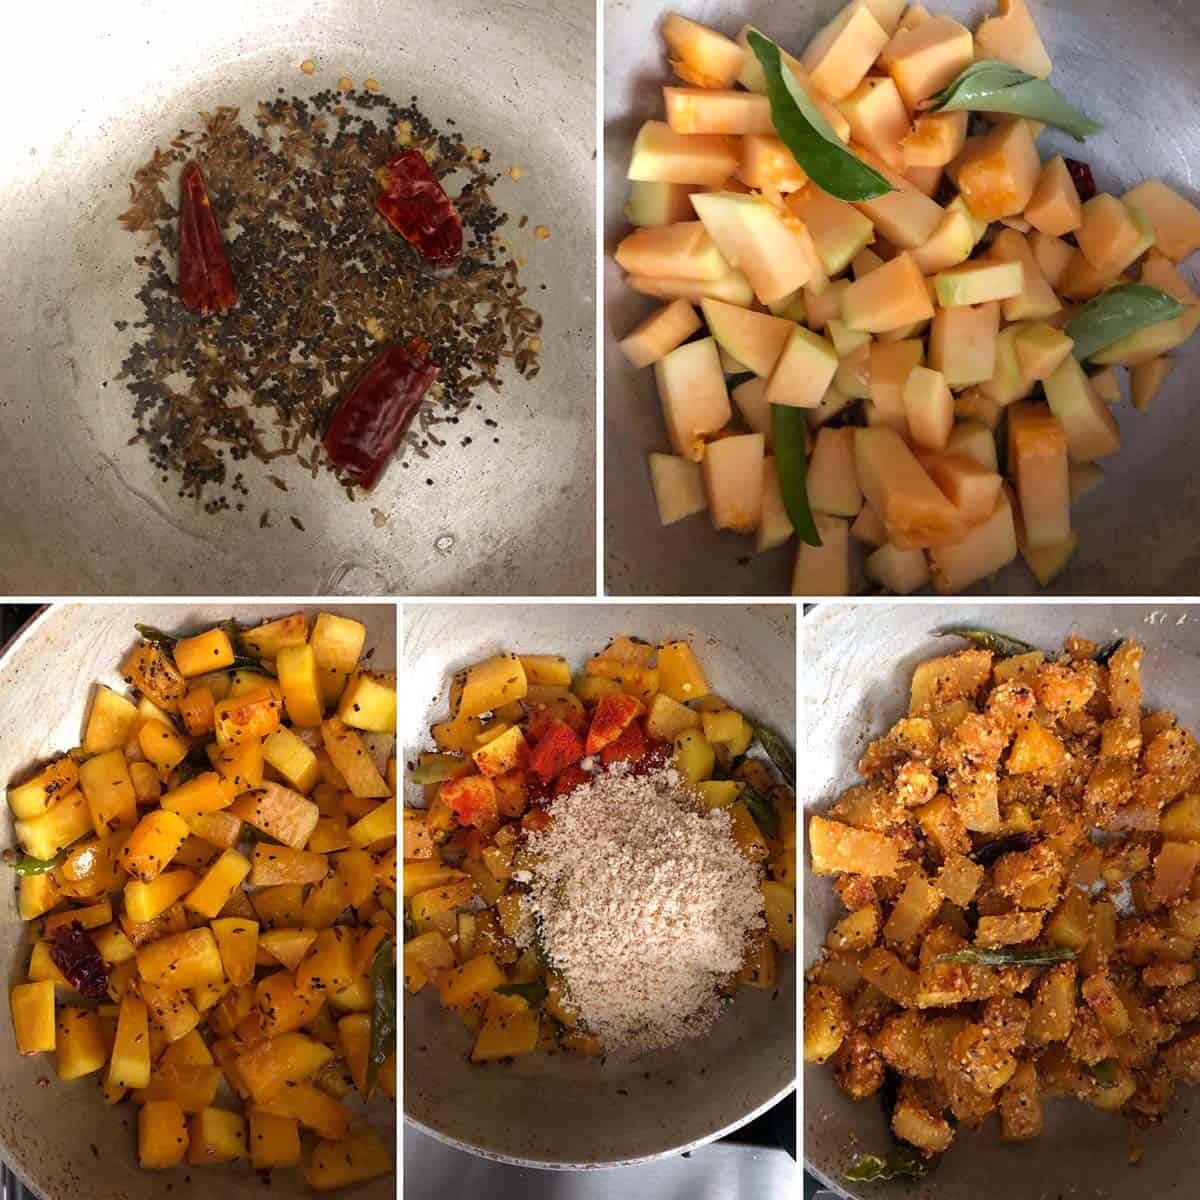 Side by side photos showing the making of the curry